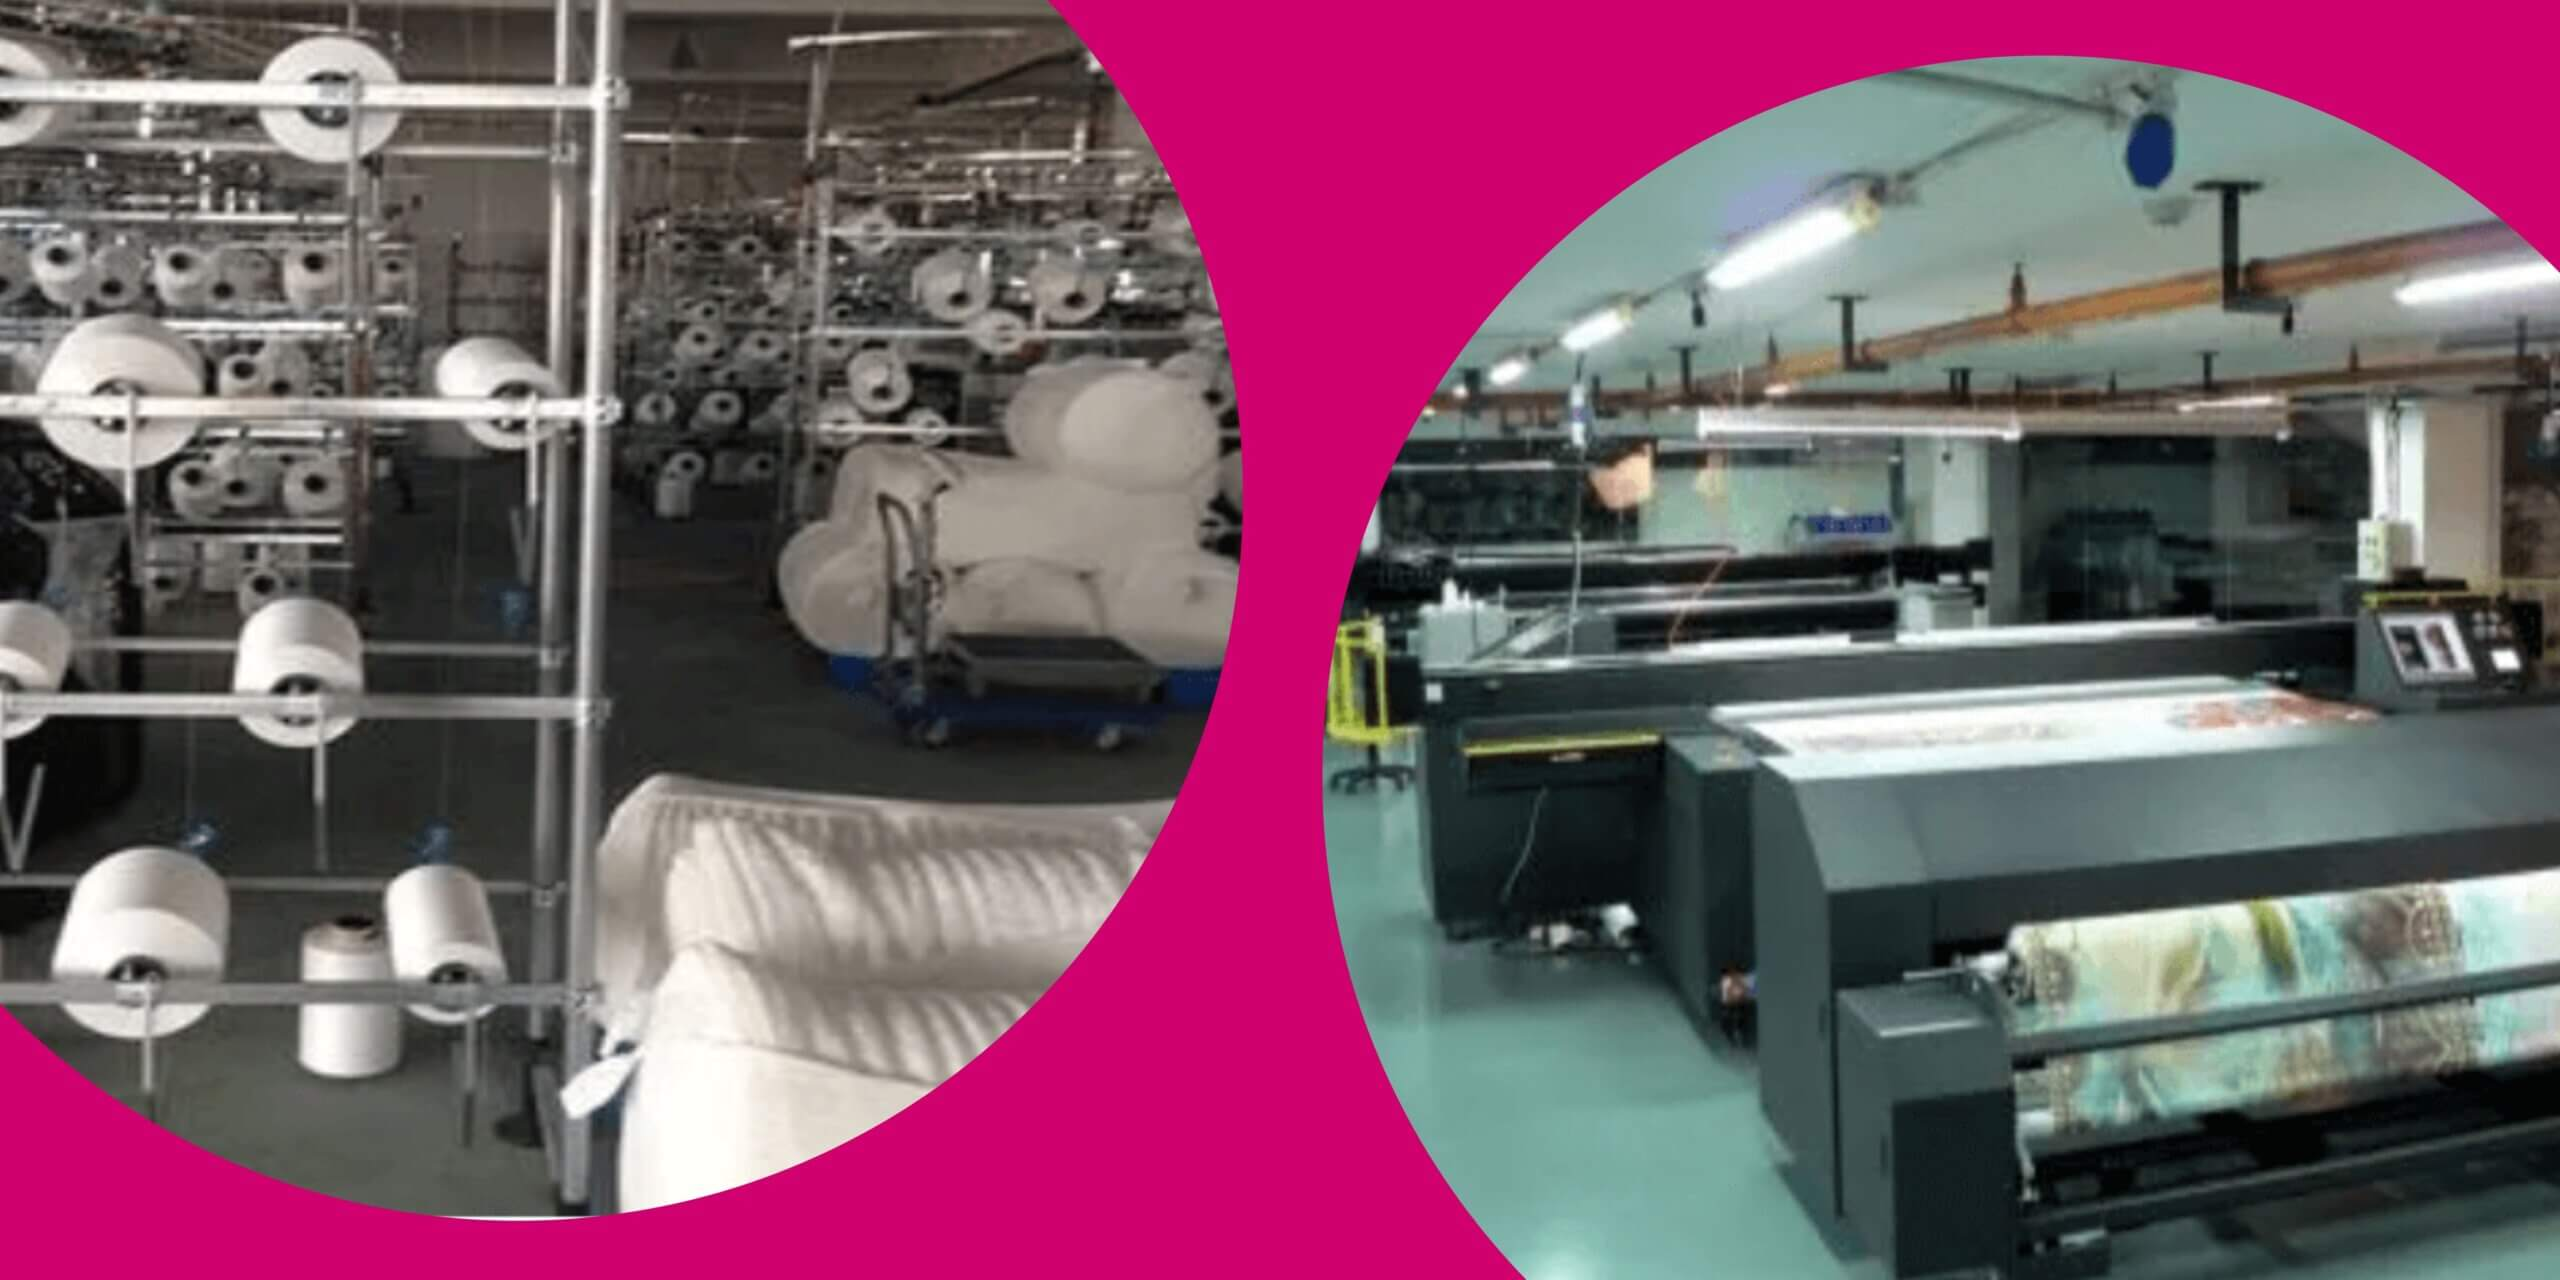 pictures of facilities where kablooie fabric is woven and printed